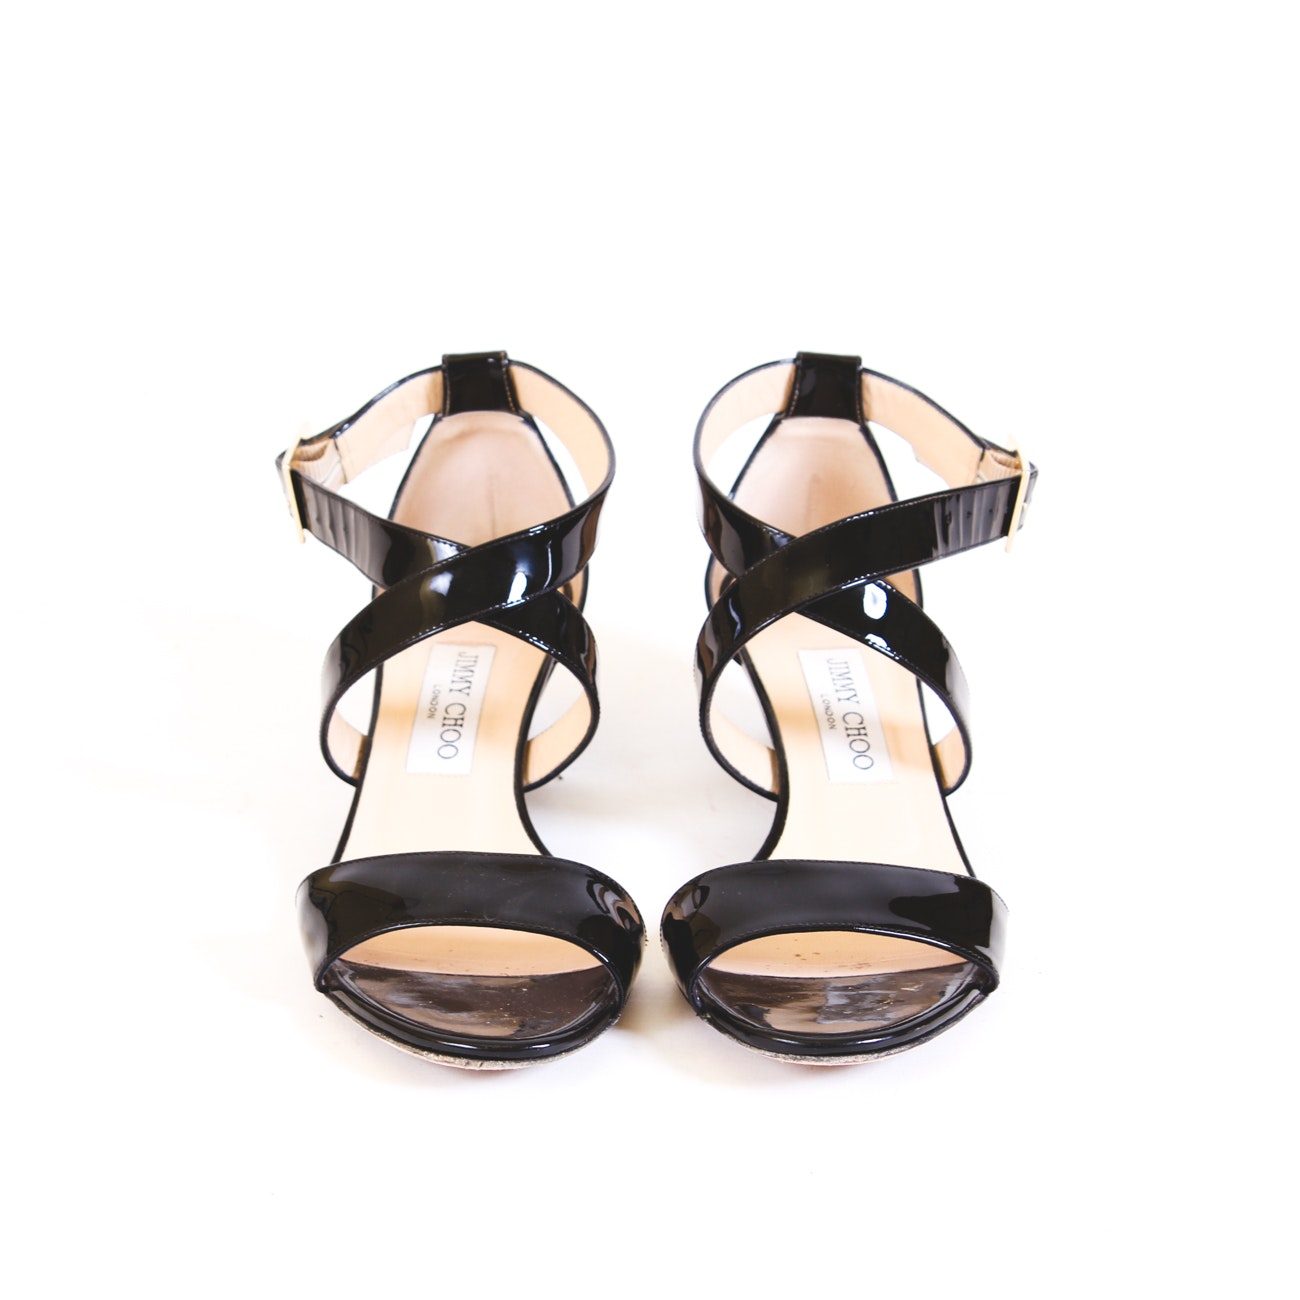 Jimmy Choo Cross Strap Patent Leather Shoes